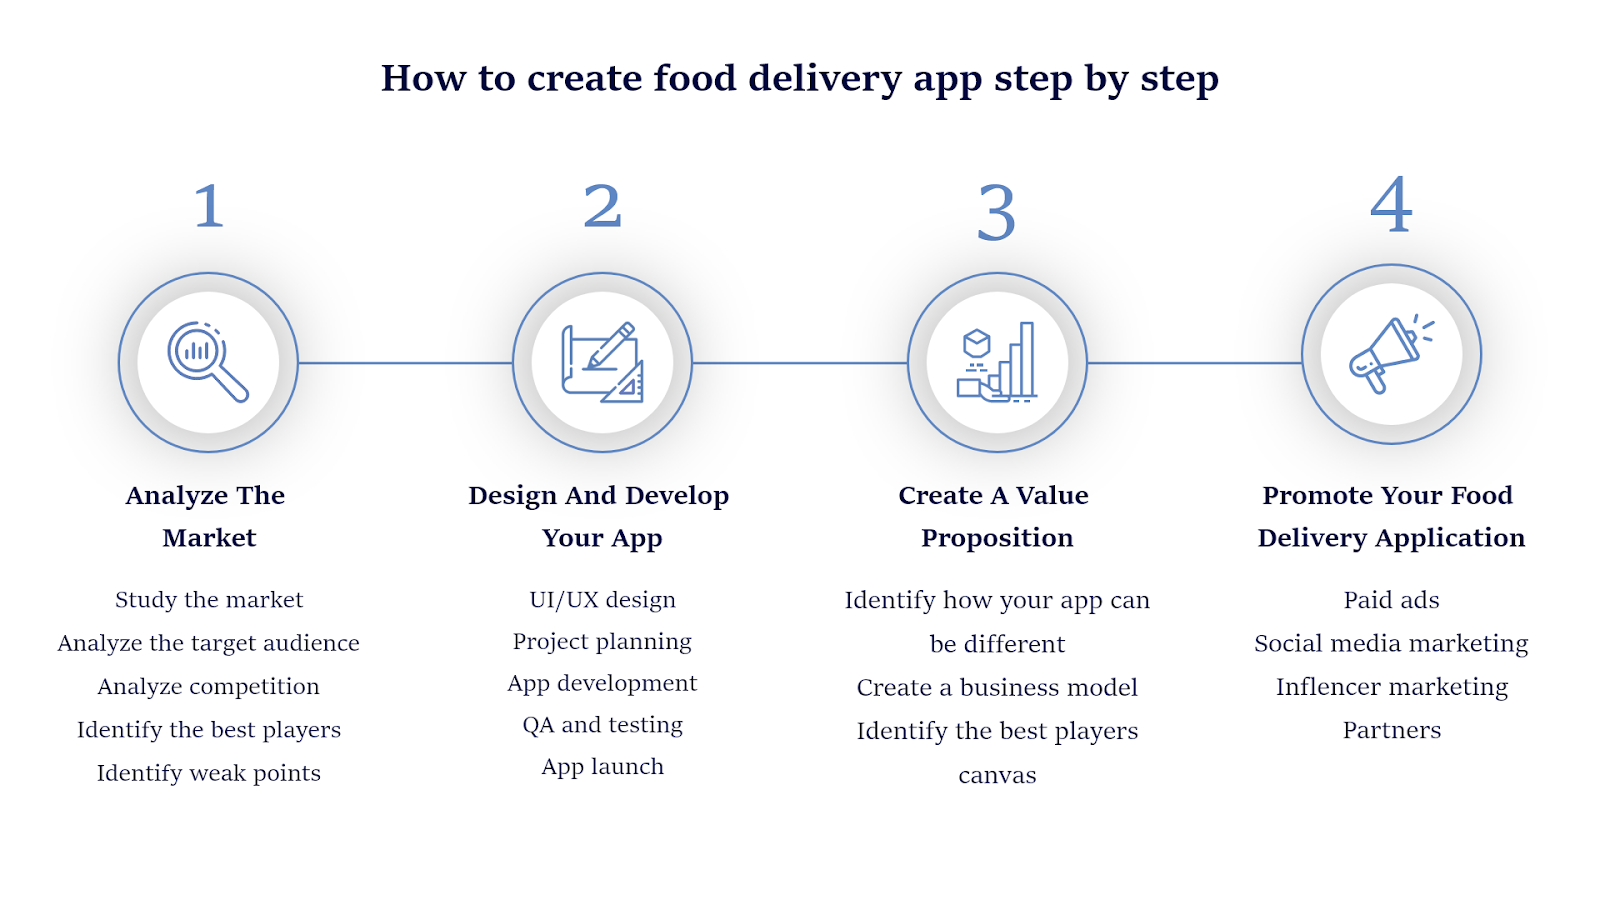 how to Create Food Delivery App: Step-by-Step Guide